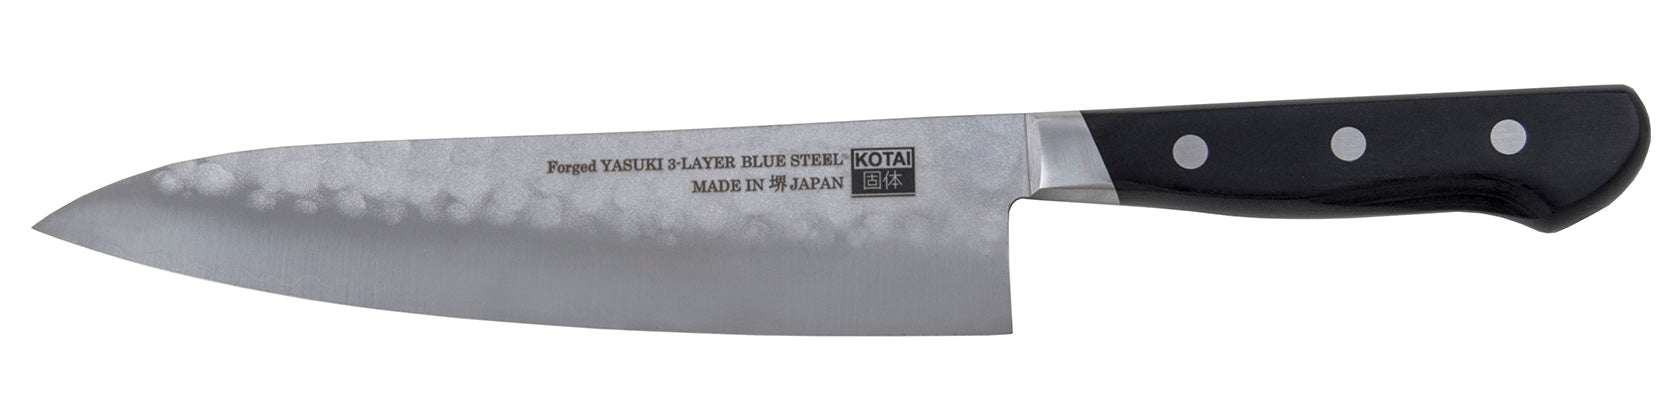 Gyuto Chef Knife - 3-Layer Blue Steel Hammered Blade